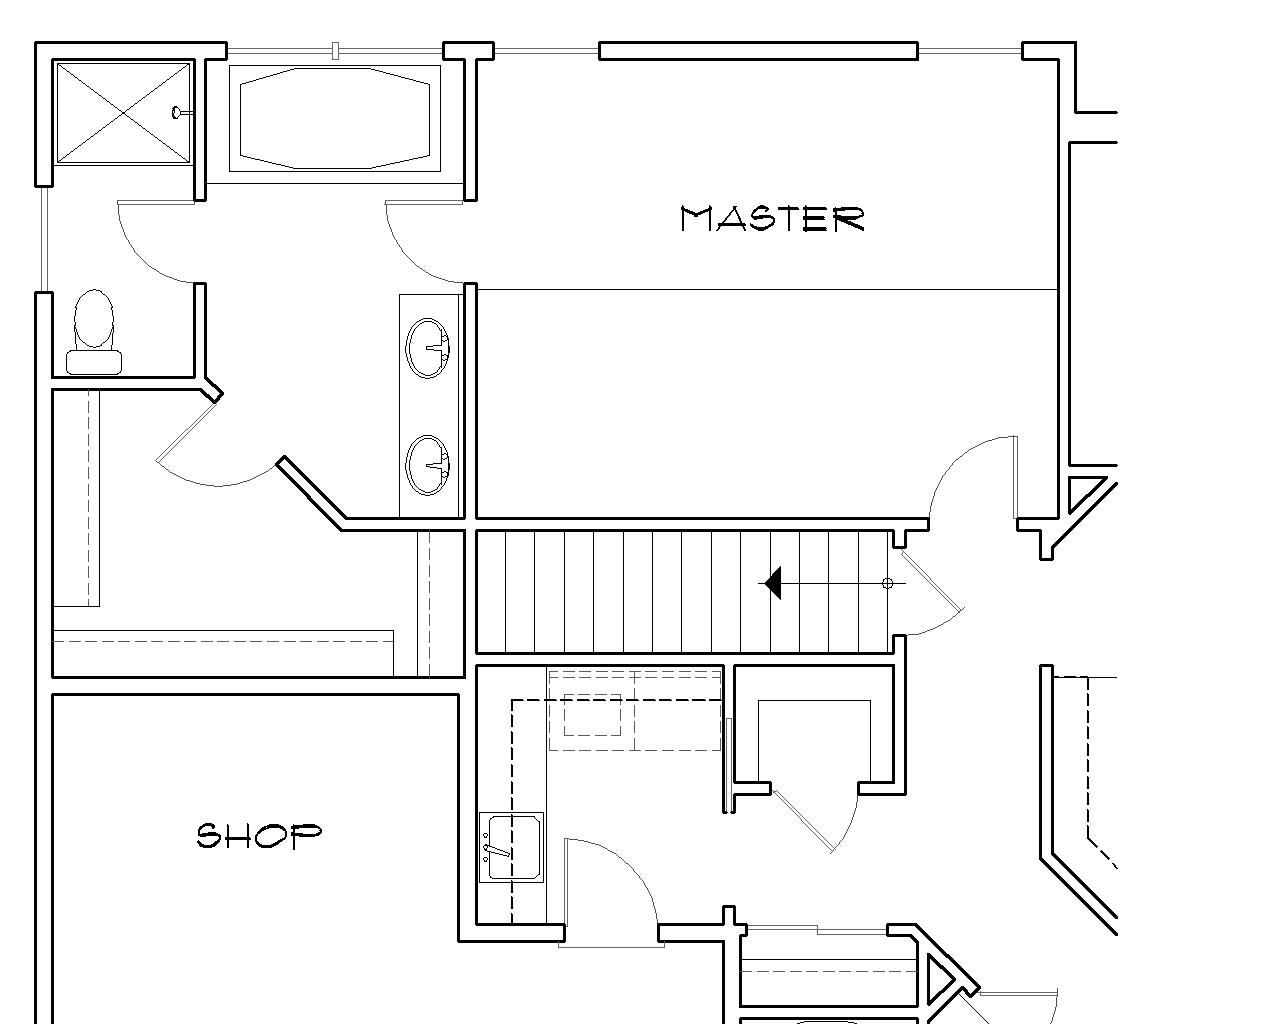 Basement Stair Designs Plans Unique Stair Floor Plan  Home Design Design Inspiration